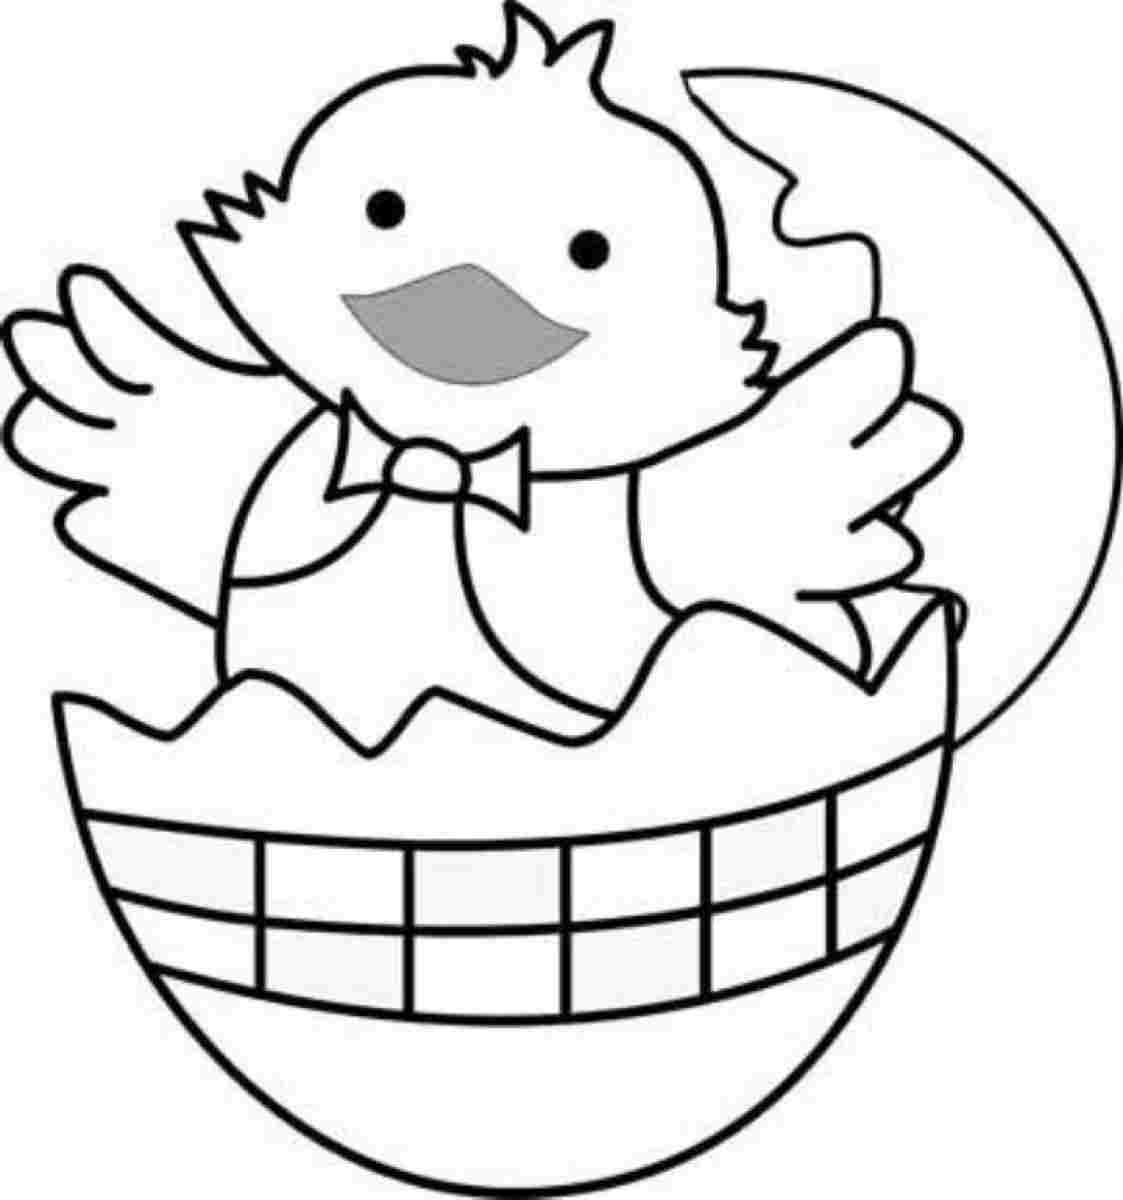 Easter Coloring Pages For Preschoolers At Getdrawings